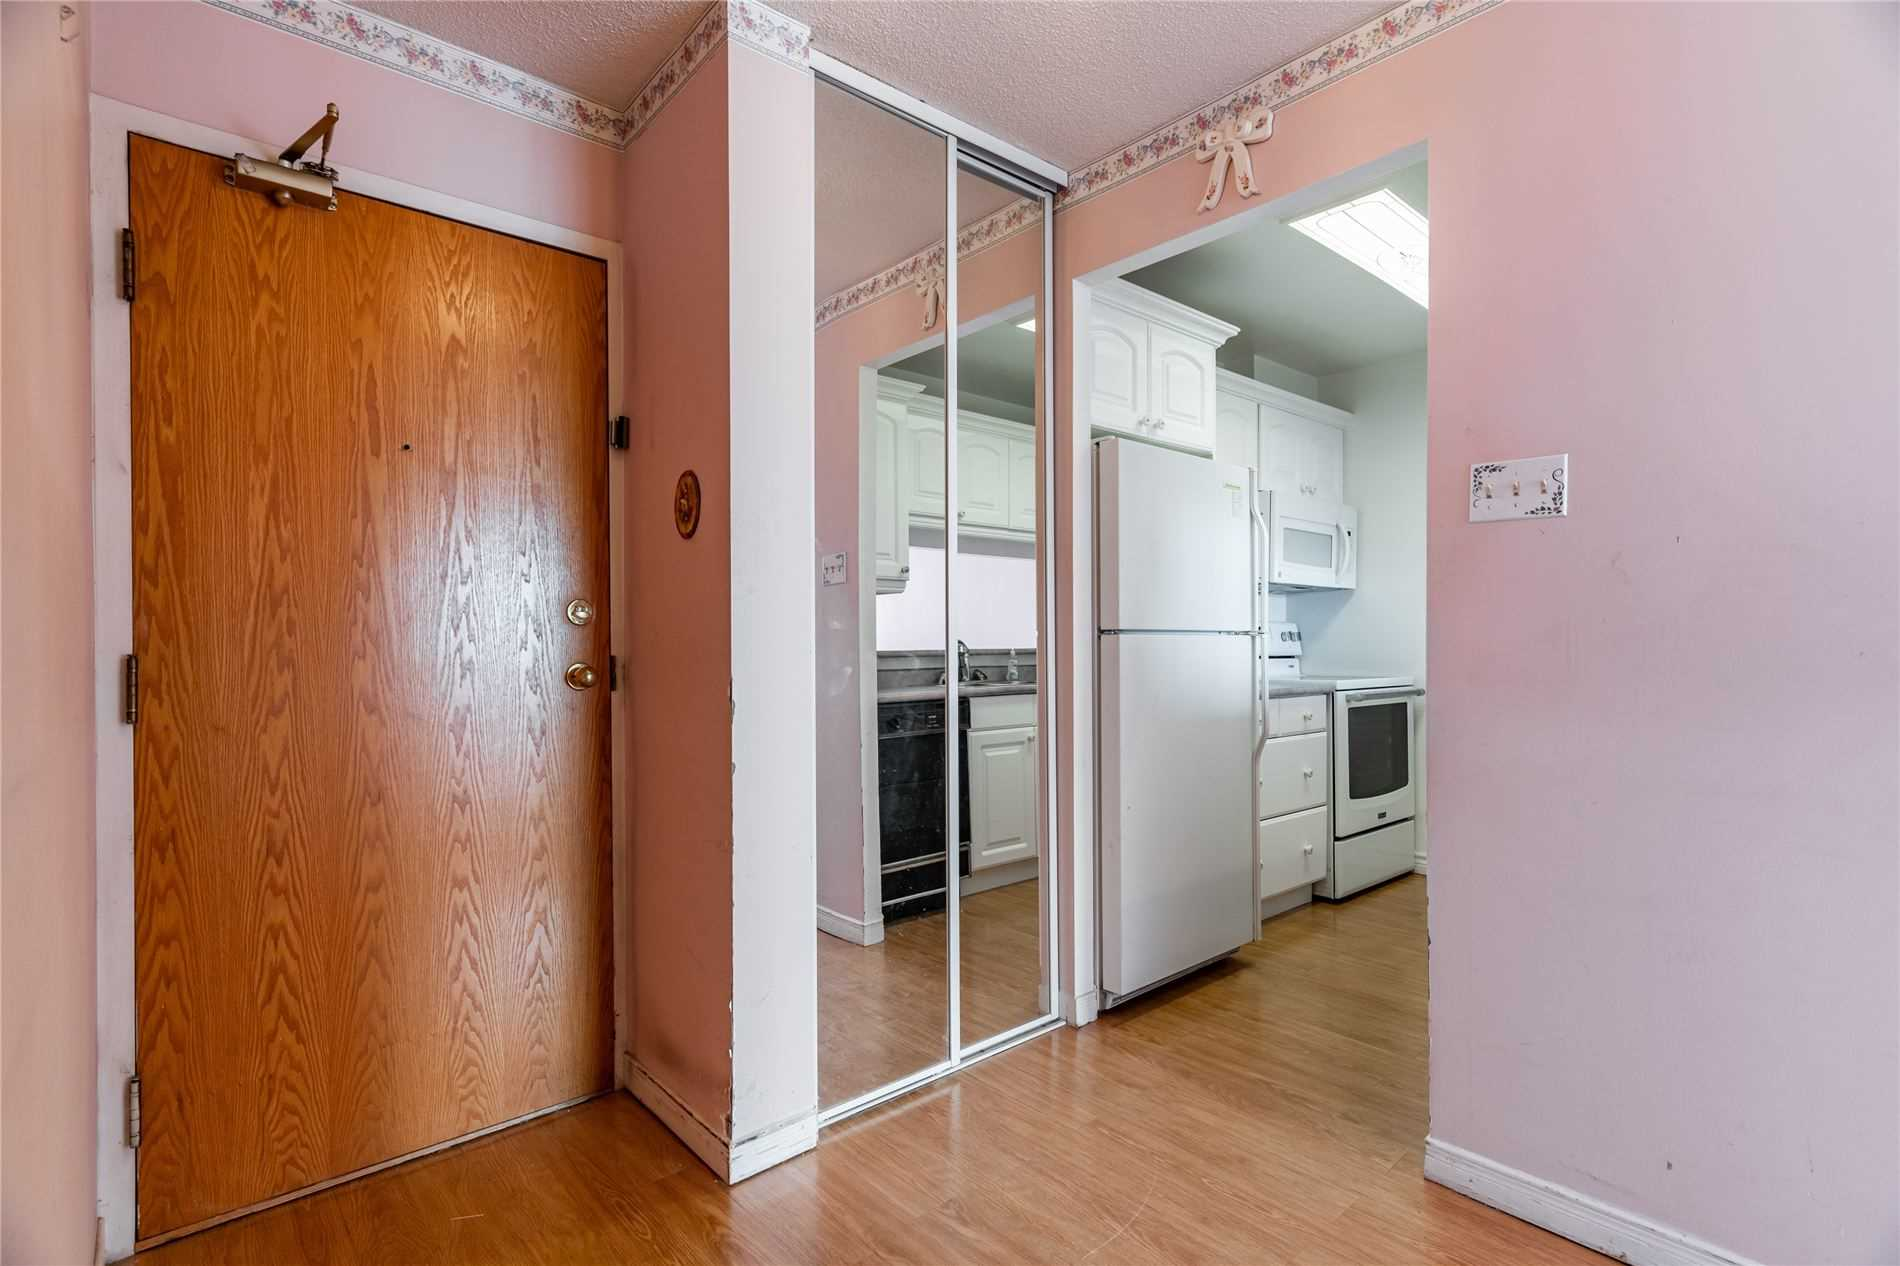 Image 38 of 40 showing inside of 2 Bedroom Condo Apt Apartment for Sale at 1665 Pickering Pkwy Unit# 812, Pickering L1V6L4